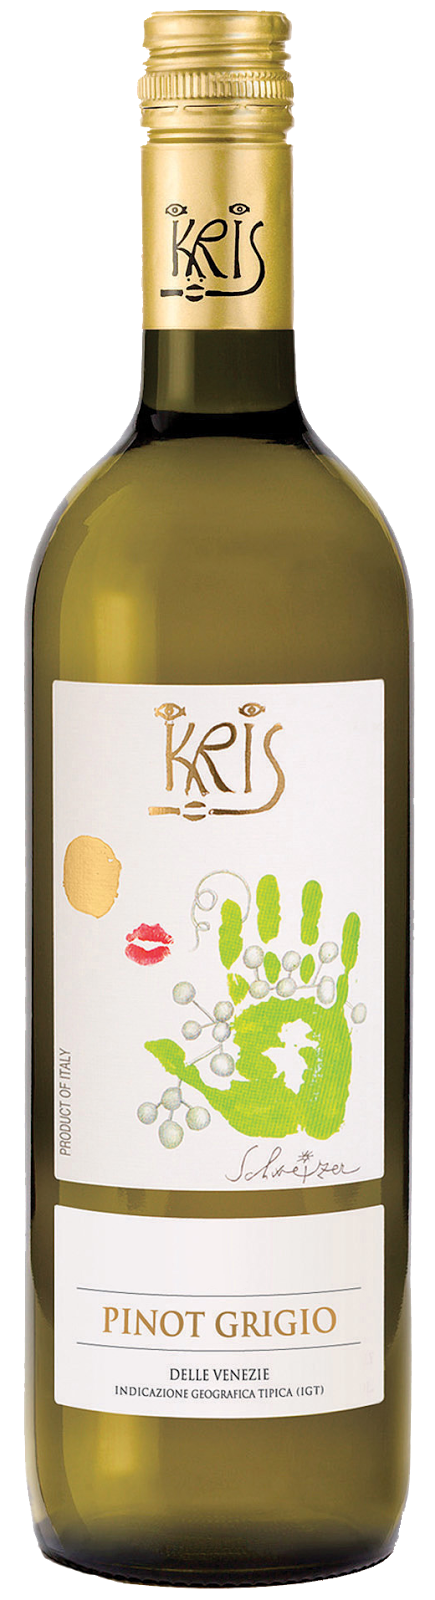 Grilled Vegetables - 2013 Kris Pinot Grigio